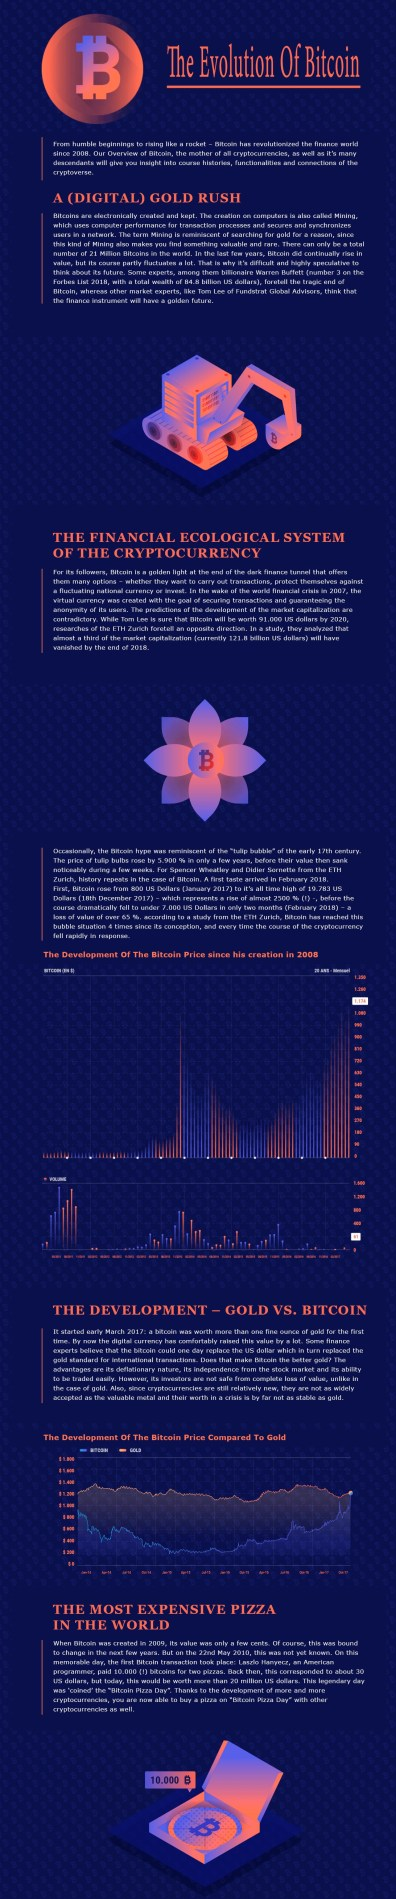 Infogrqphic evolution of #Bitcoin